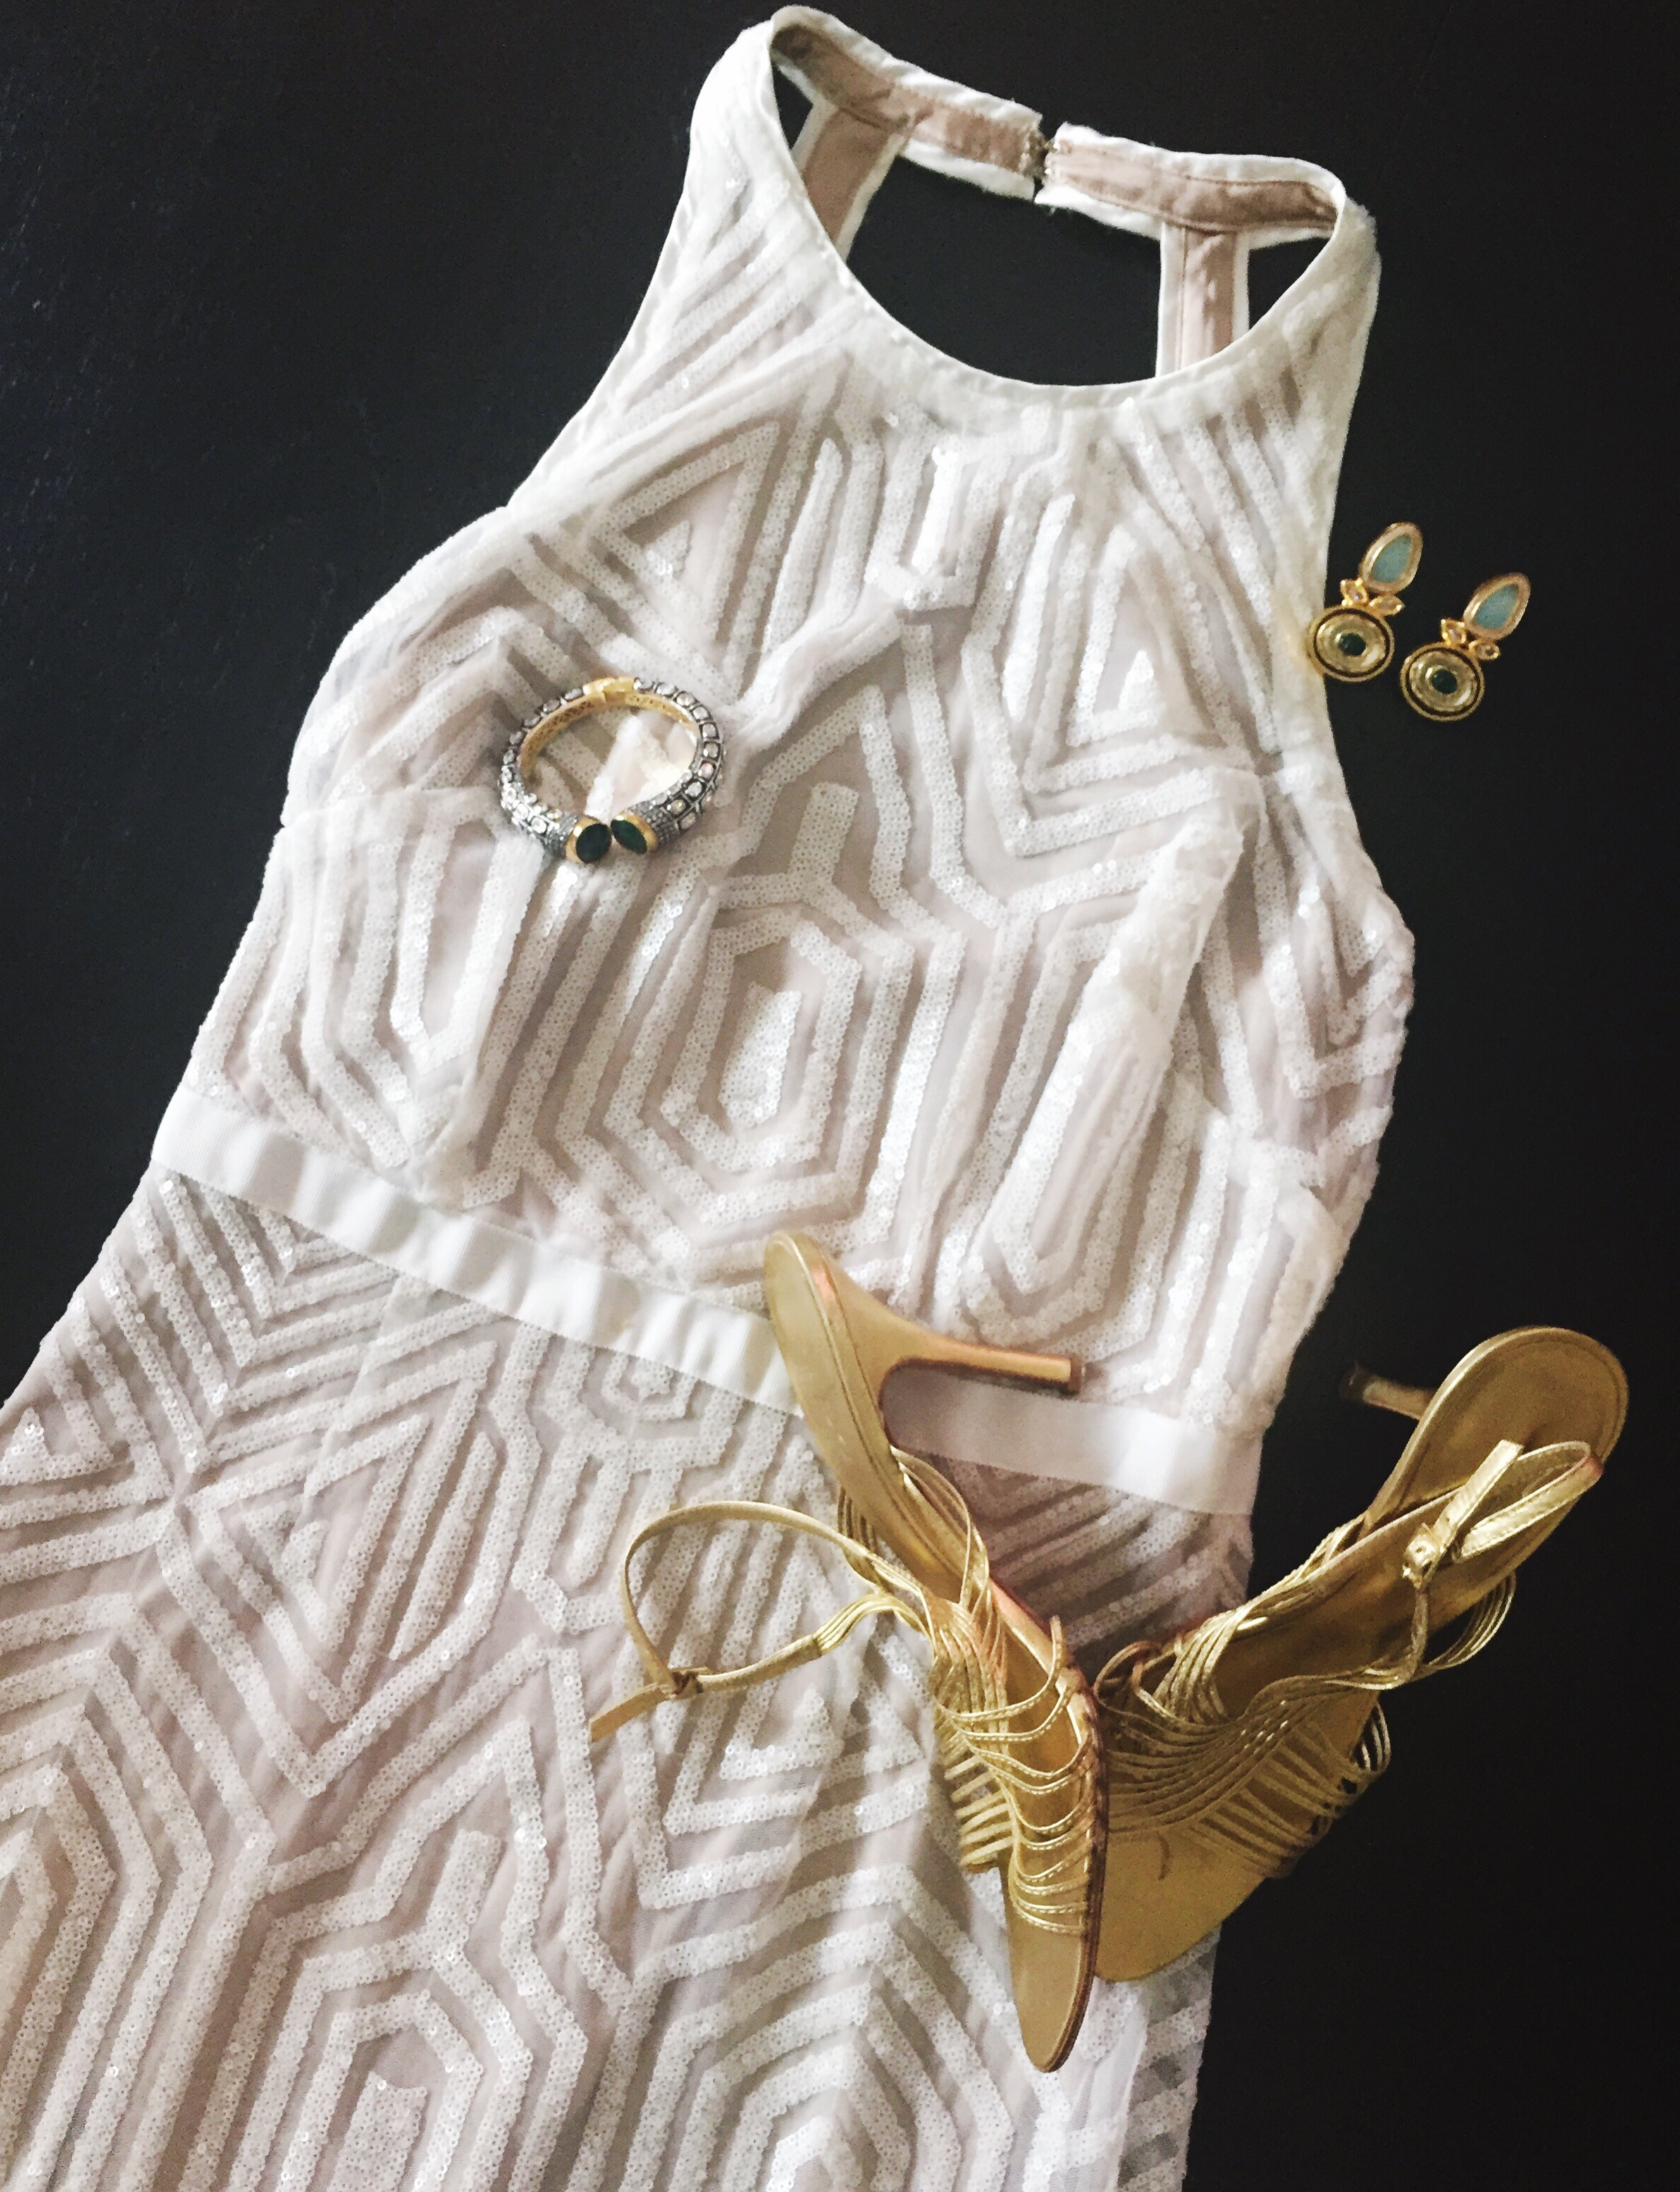 Rent the Runway Dress styled with Jewelry